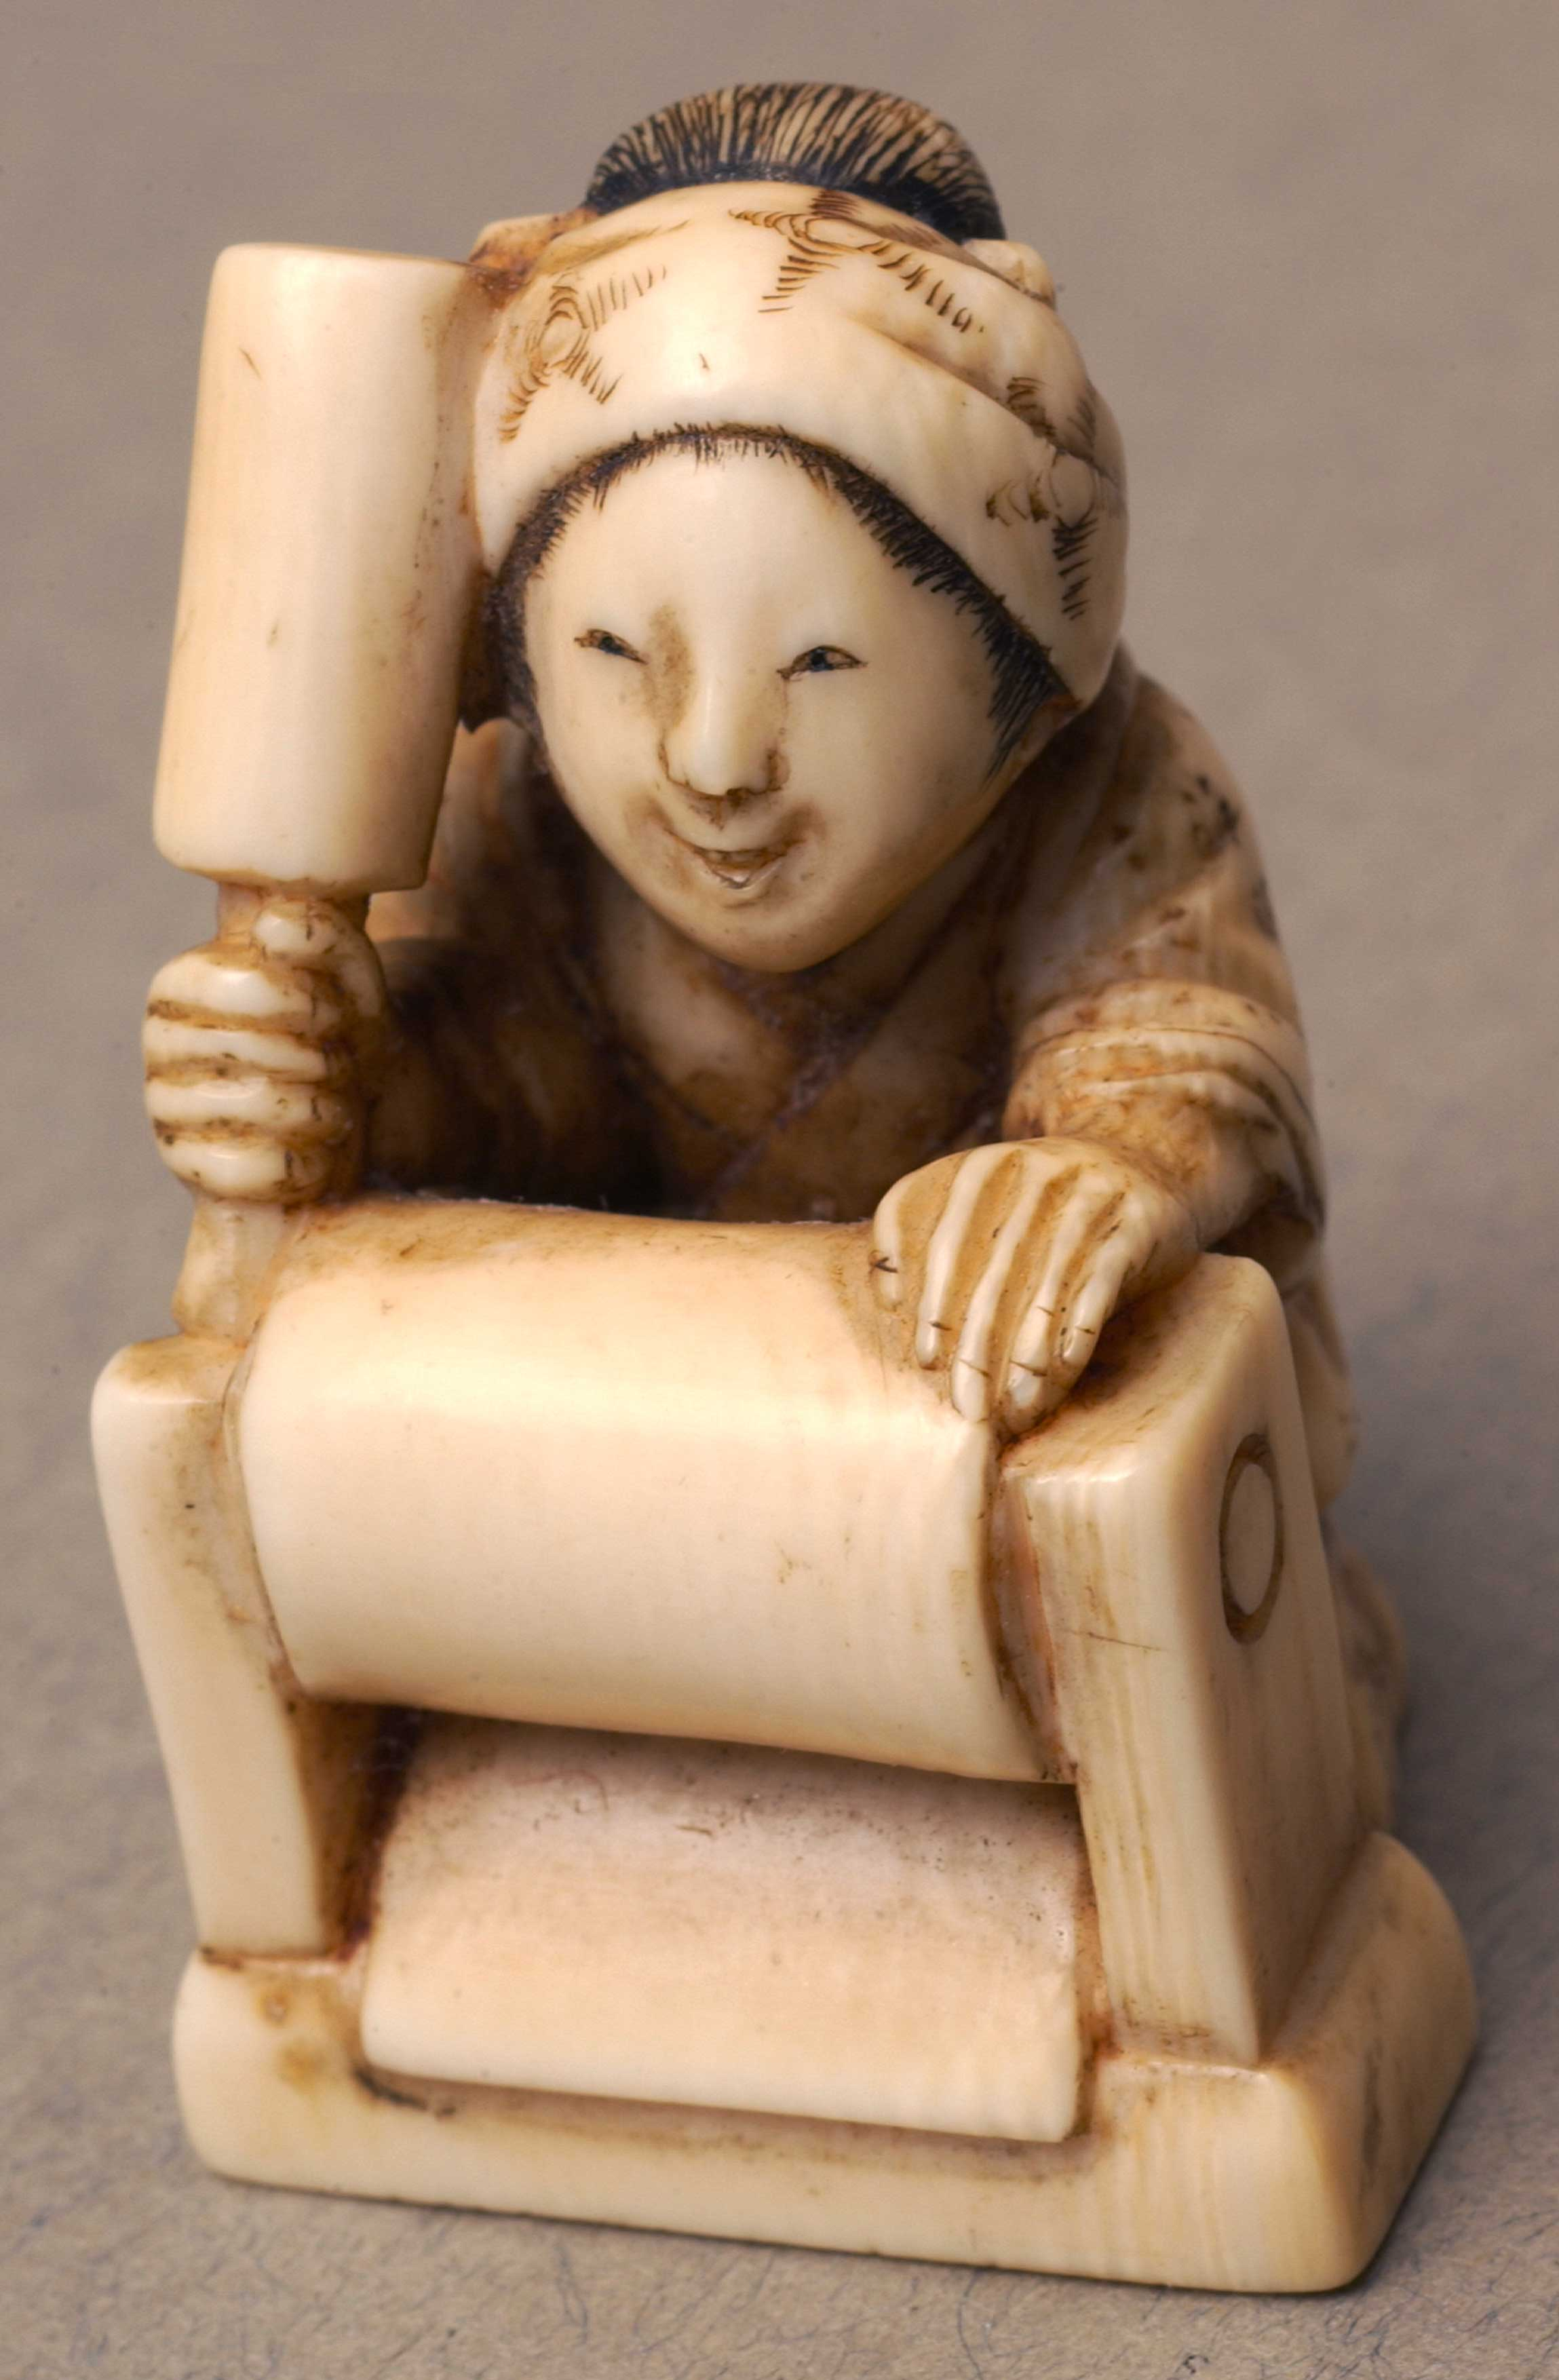 Netsuke depicting a woman in traditional Japanese clothing